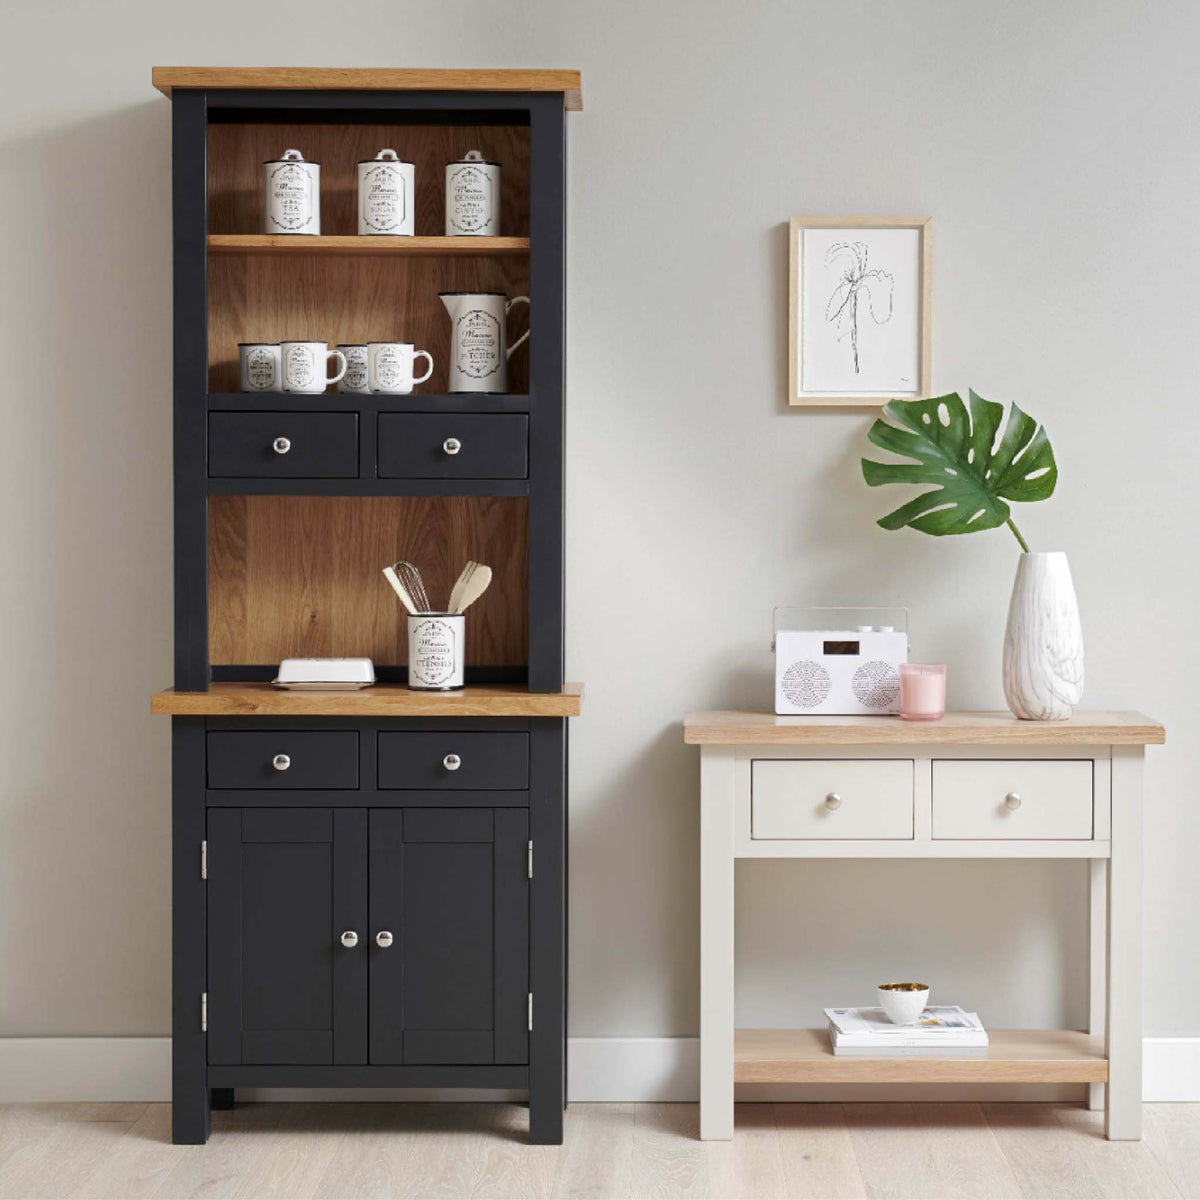 Charlestown Black 2 Drawer Hutch - Add the Sideboard to Create Dresser